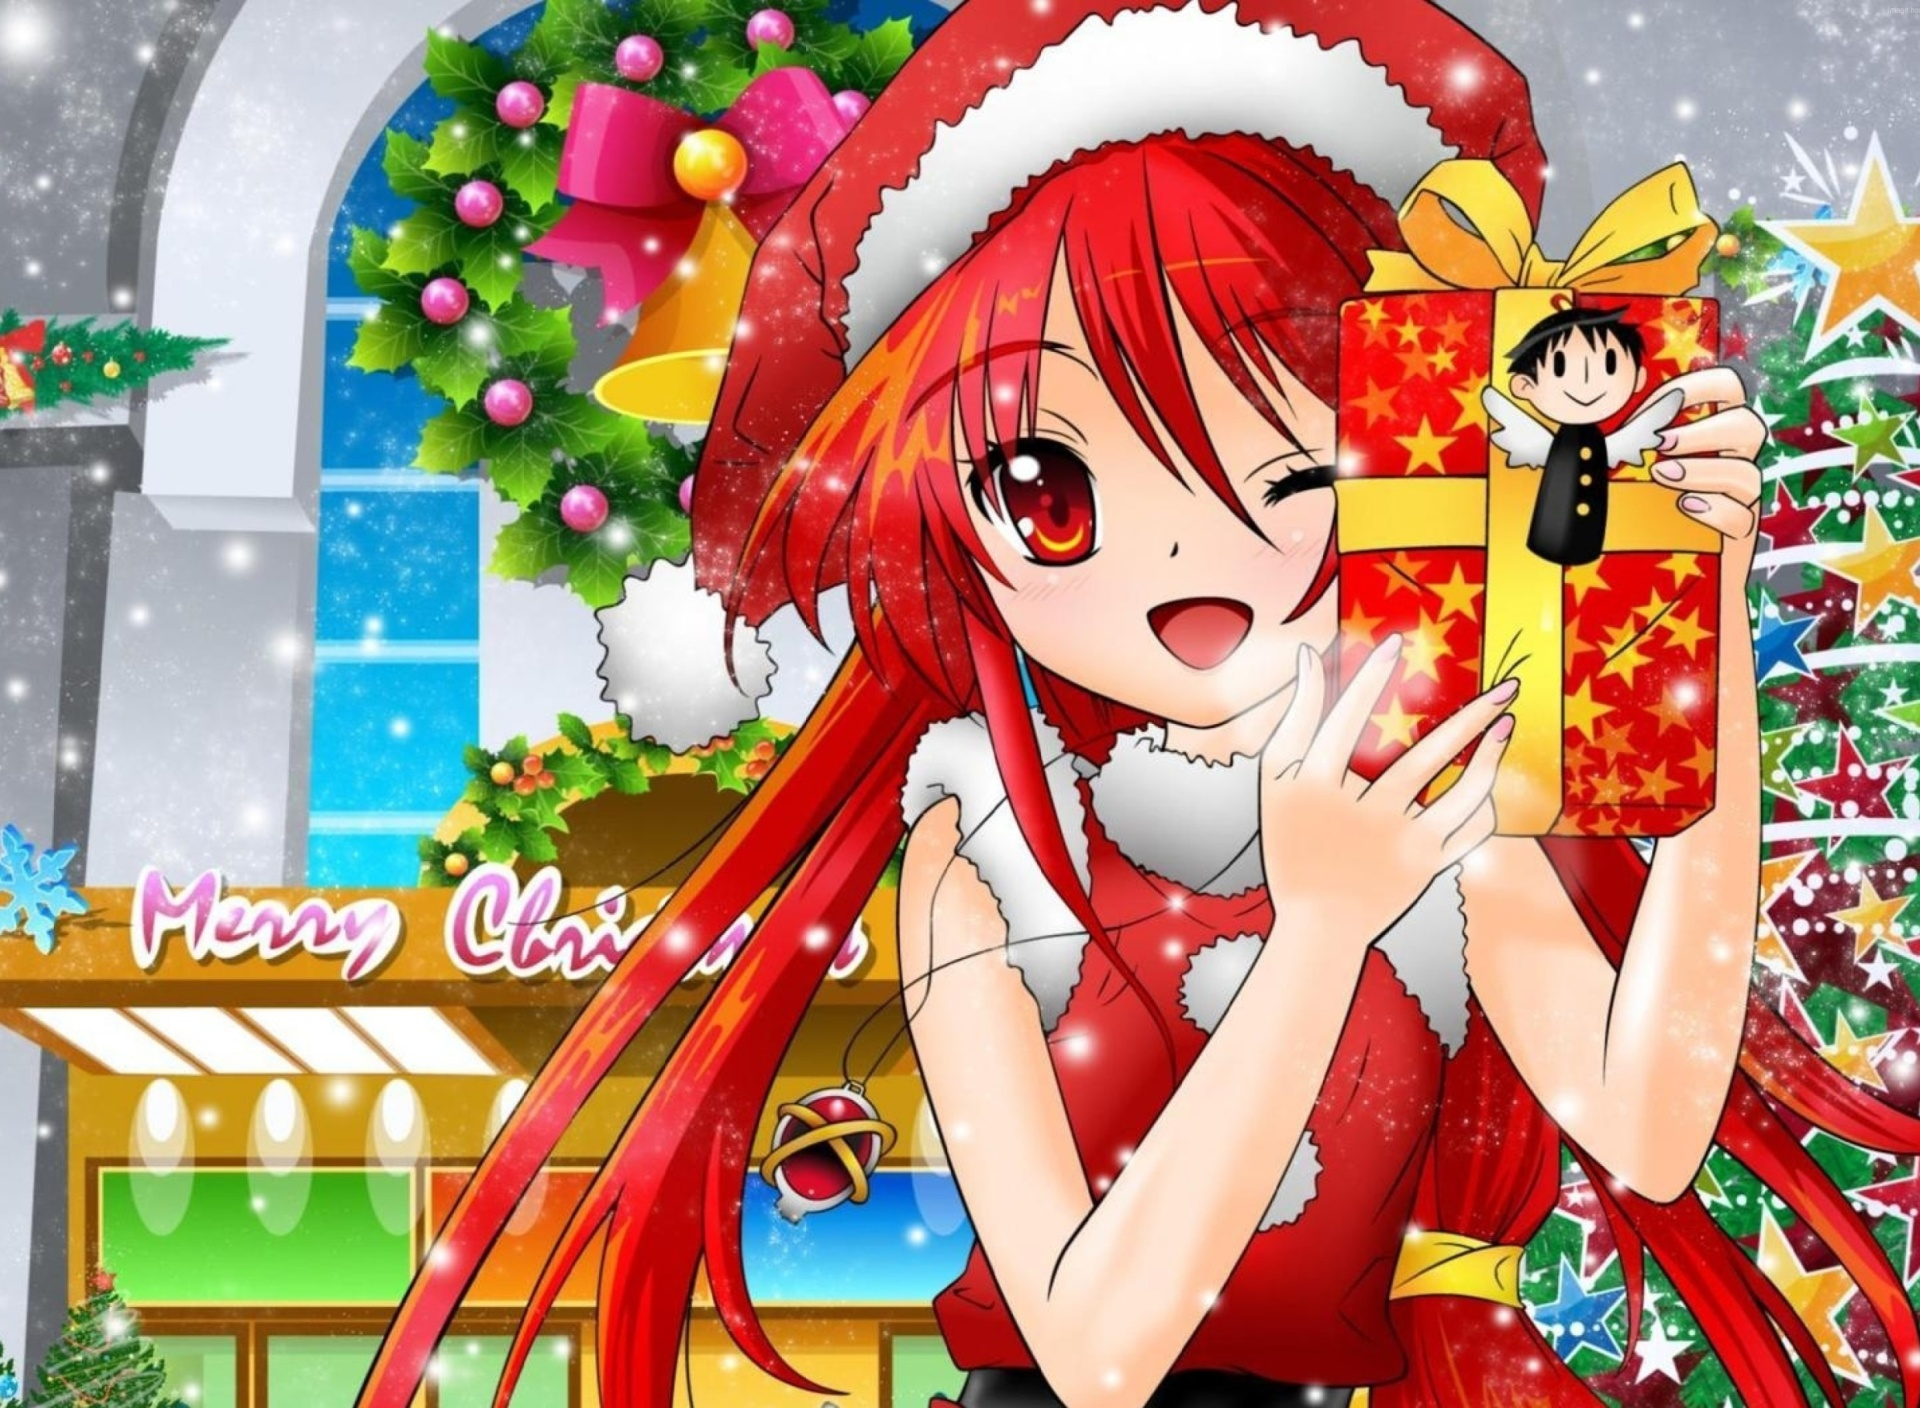 Sfondi Christmas Anime girl 1920x1408